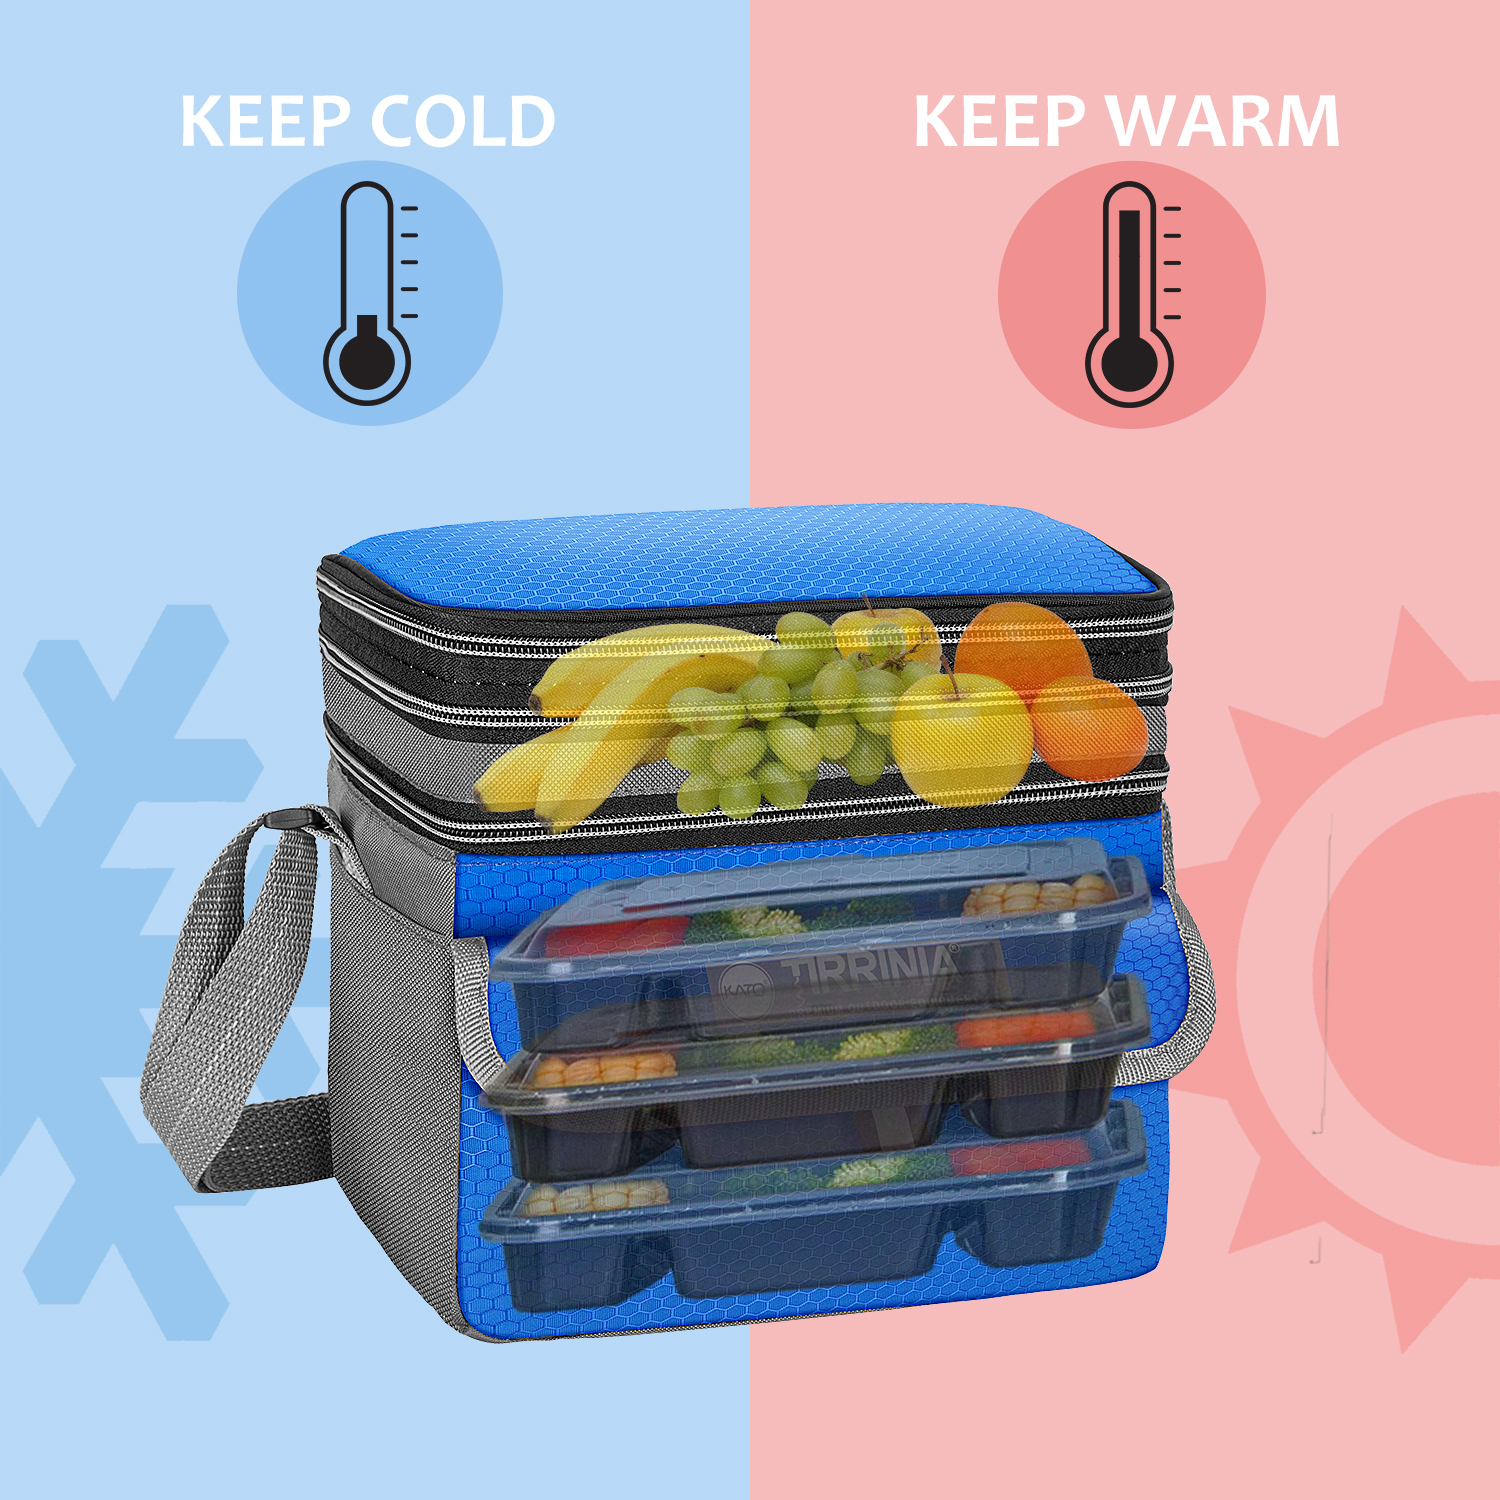 Lunch Bag Insulated Lunch Tote Bag Leakproof Cooler Bag for Men Women Kids Adult